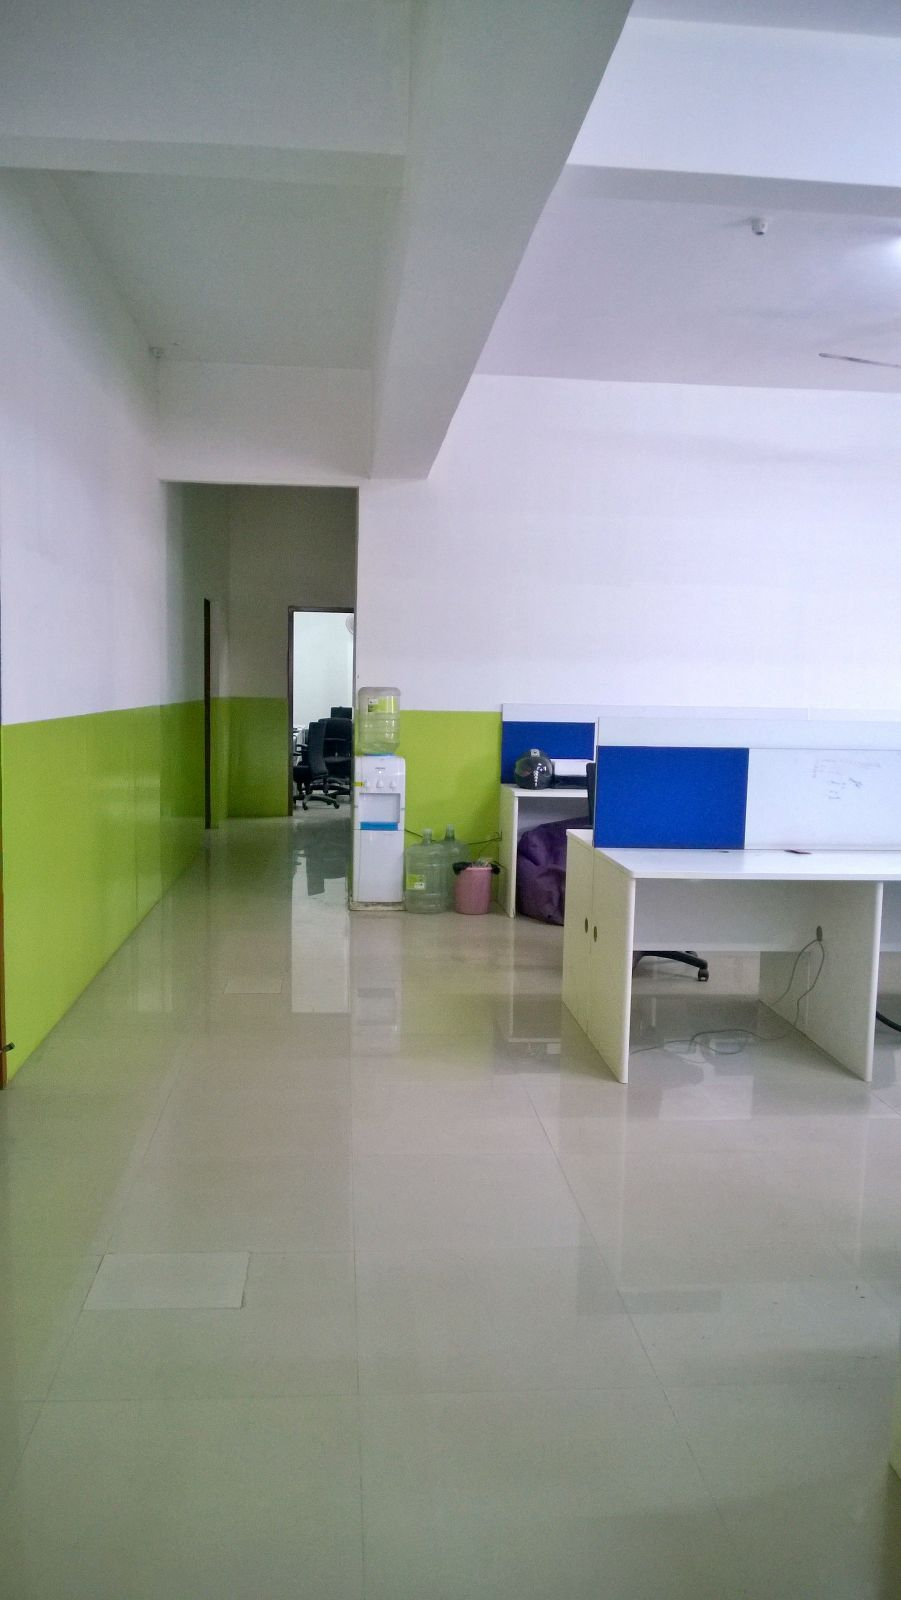 kowrk 365 shared space coworking space H.S.R. bangalore